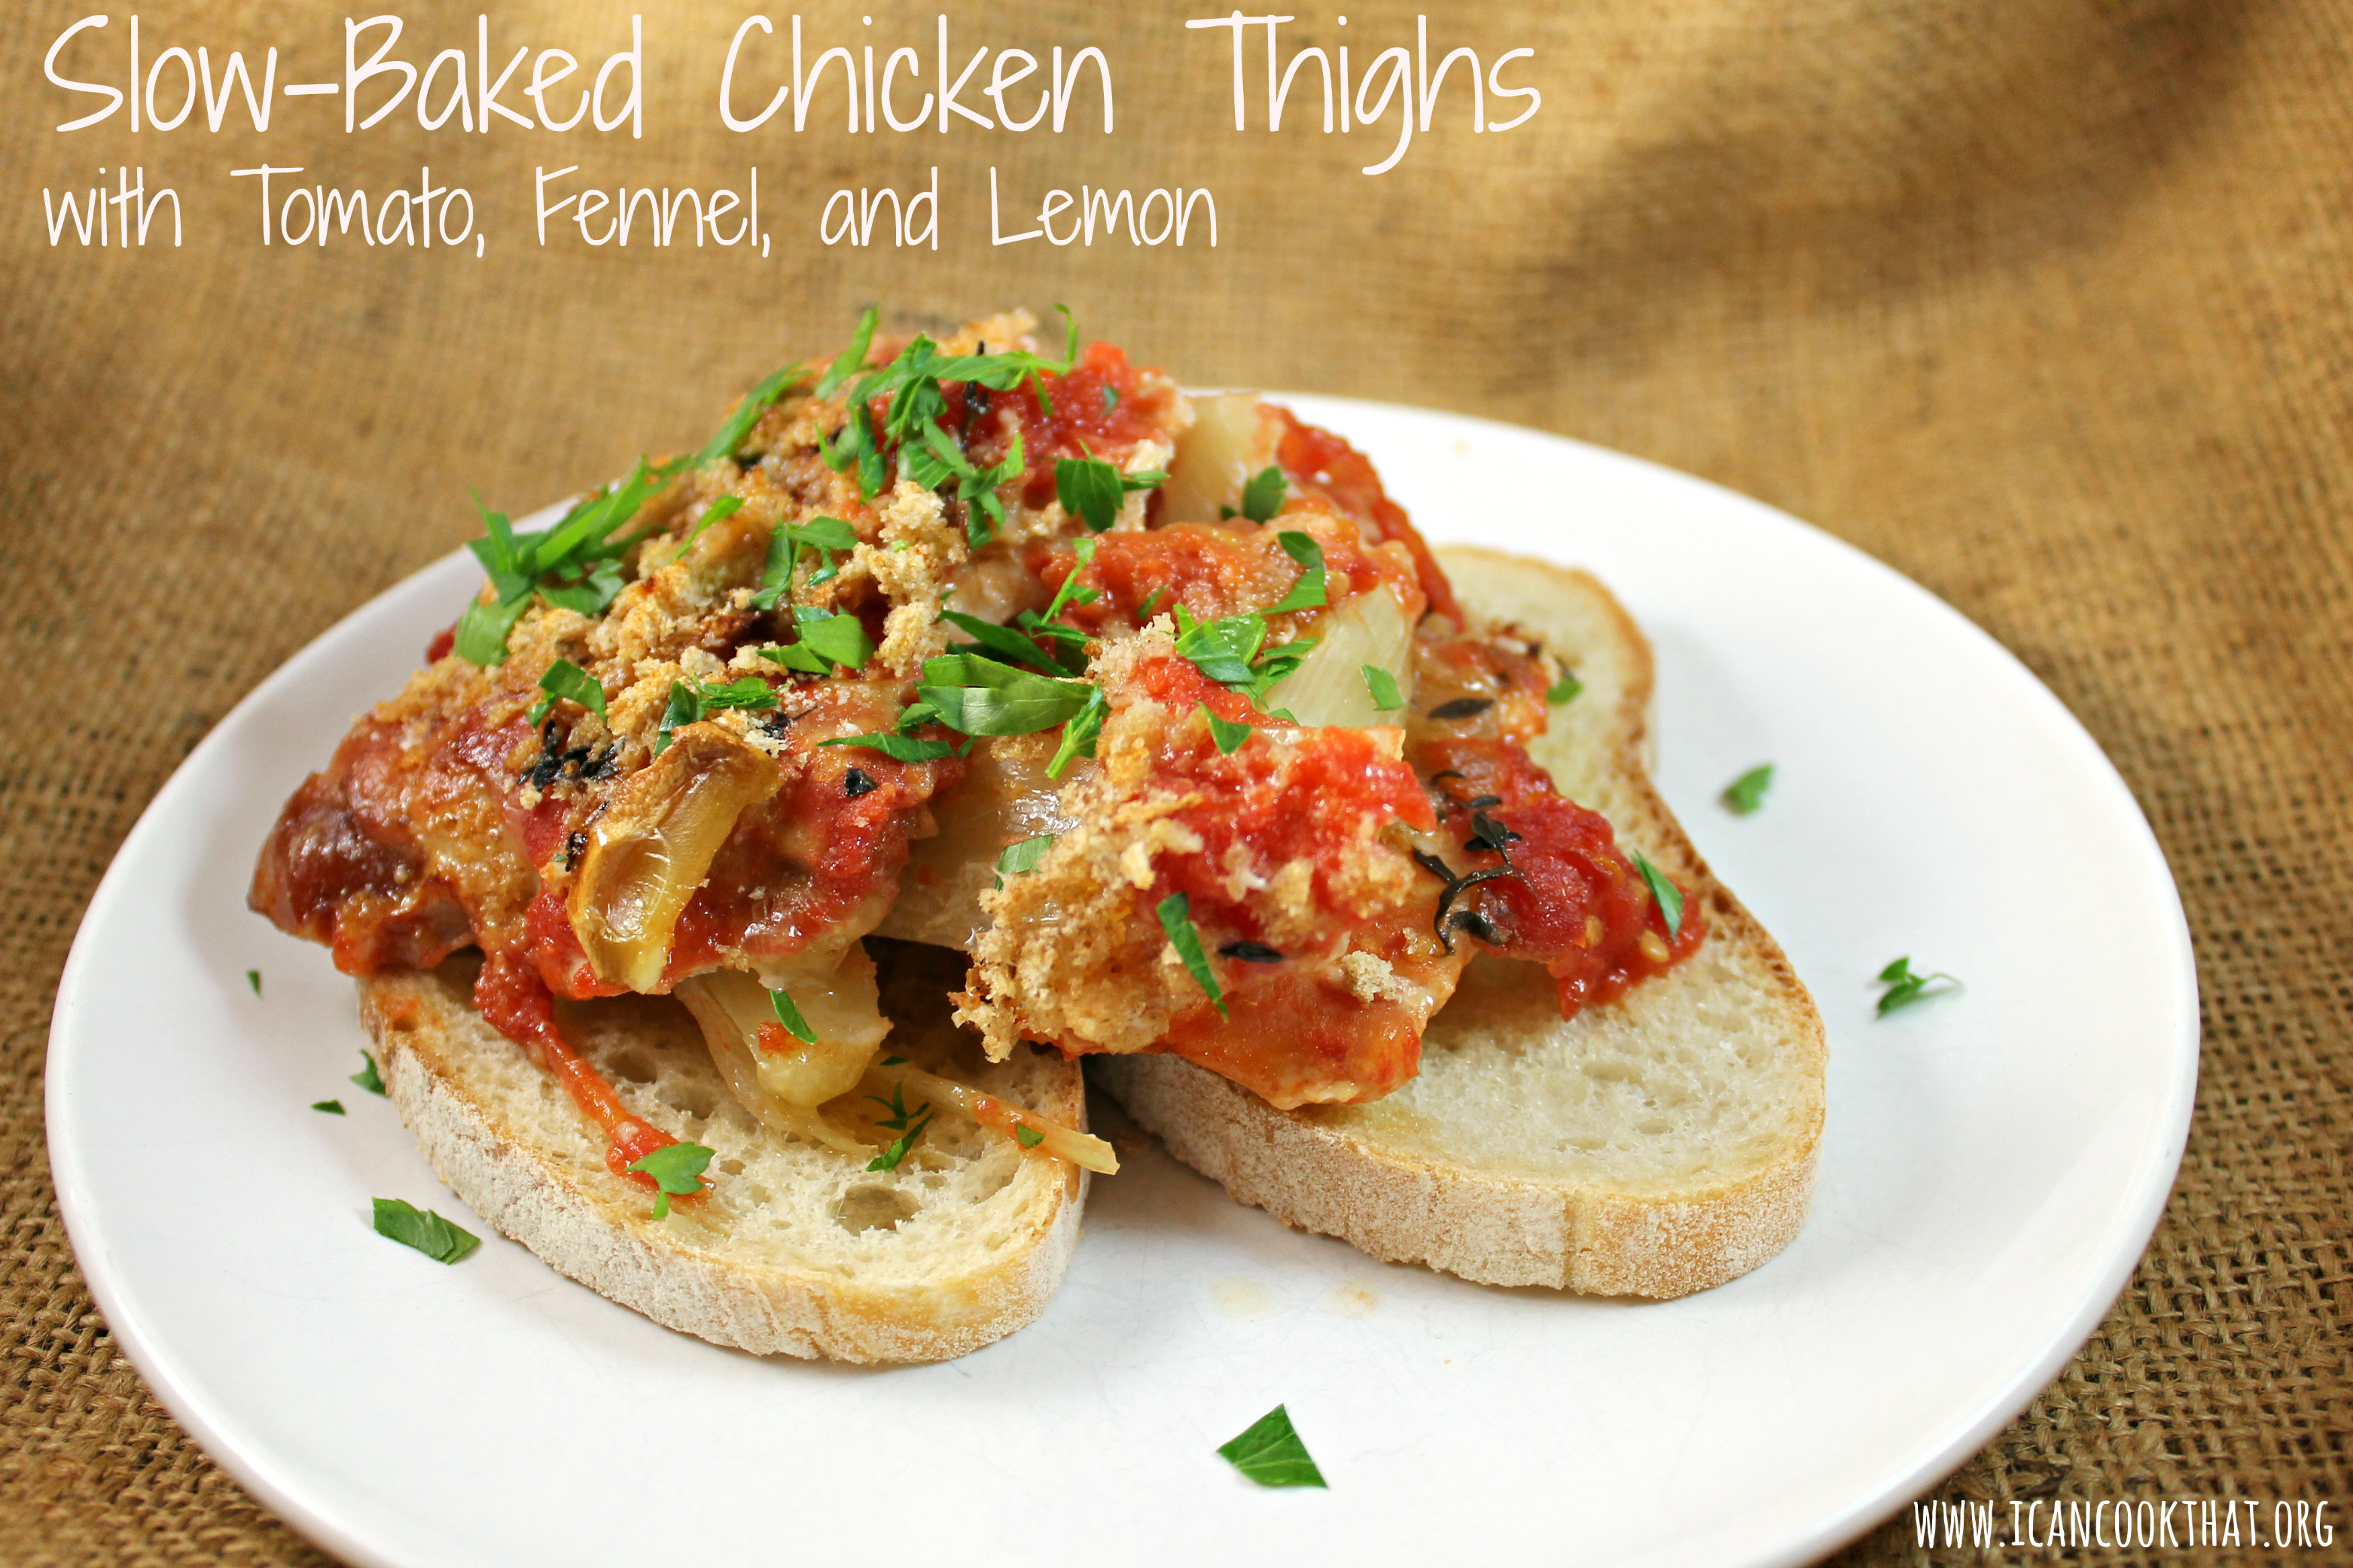 Slow Baked Chicken  Slow Baked Chicken Thighs with Tomato Fennel and Lemon